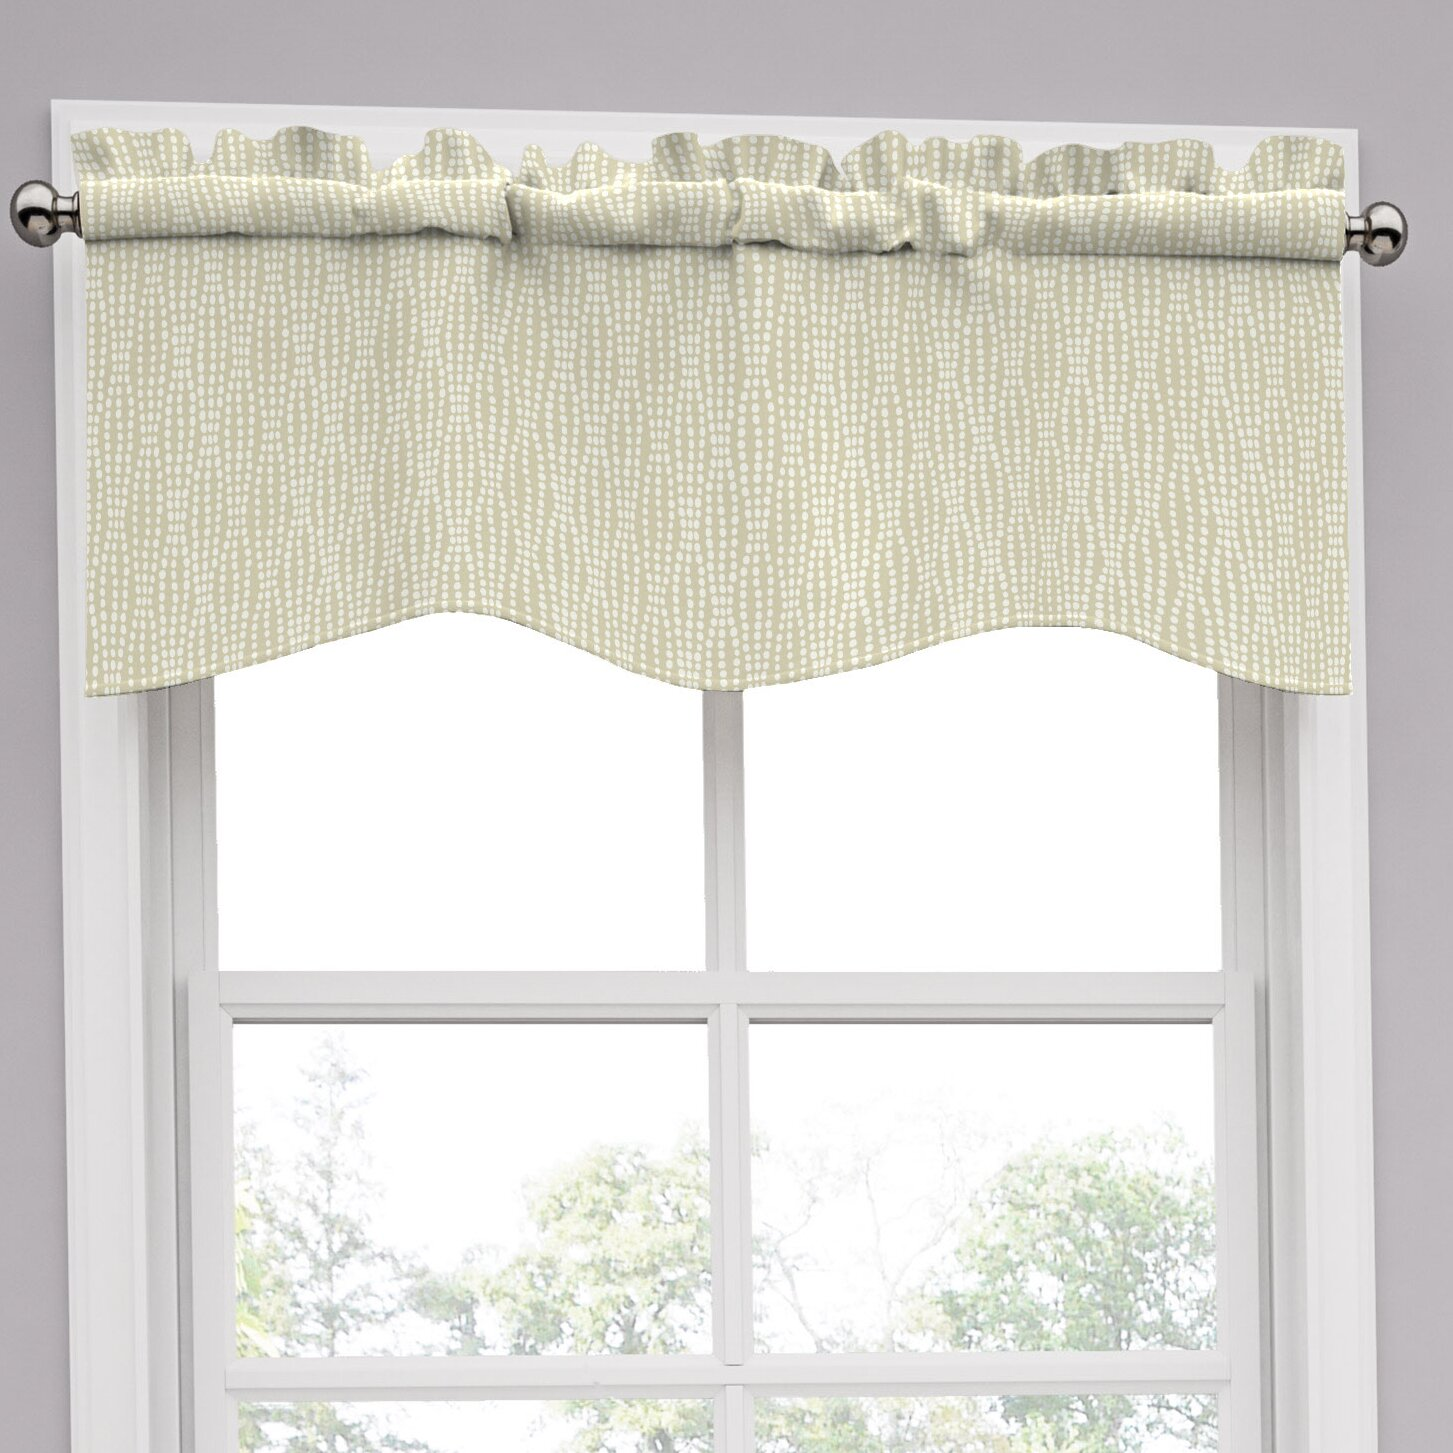 "Traditions By Waverly Strands 52"" Curtain Valance"